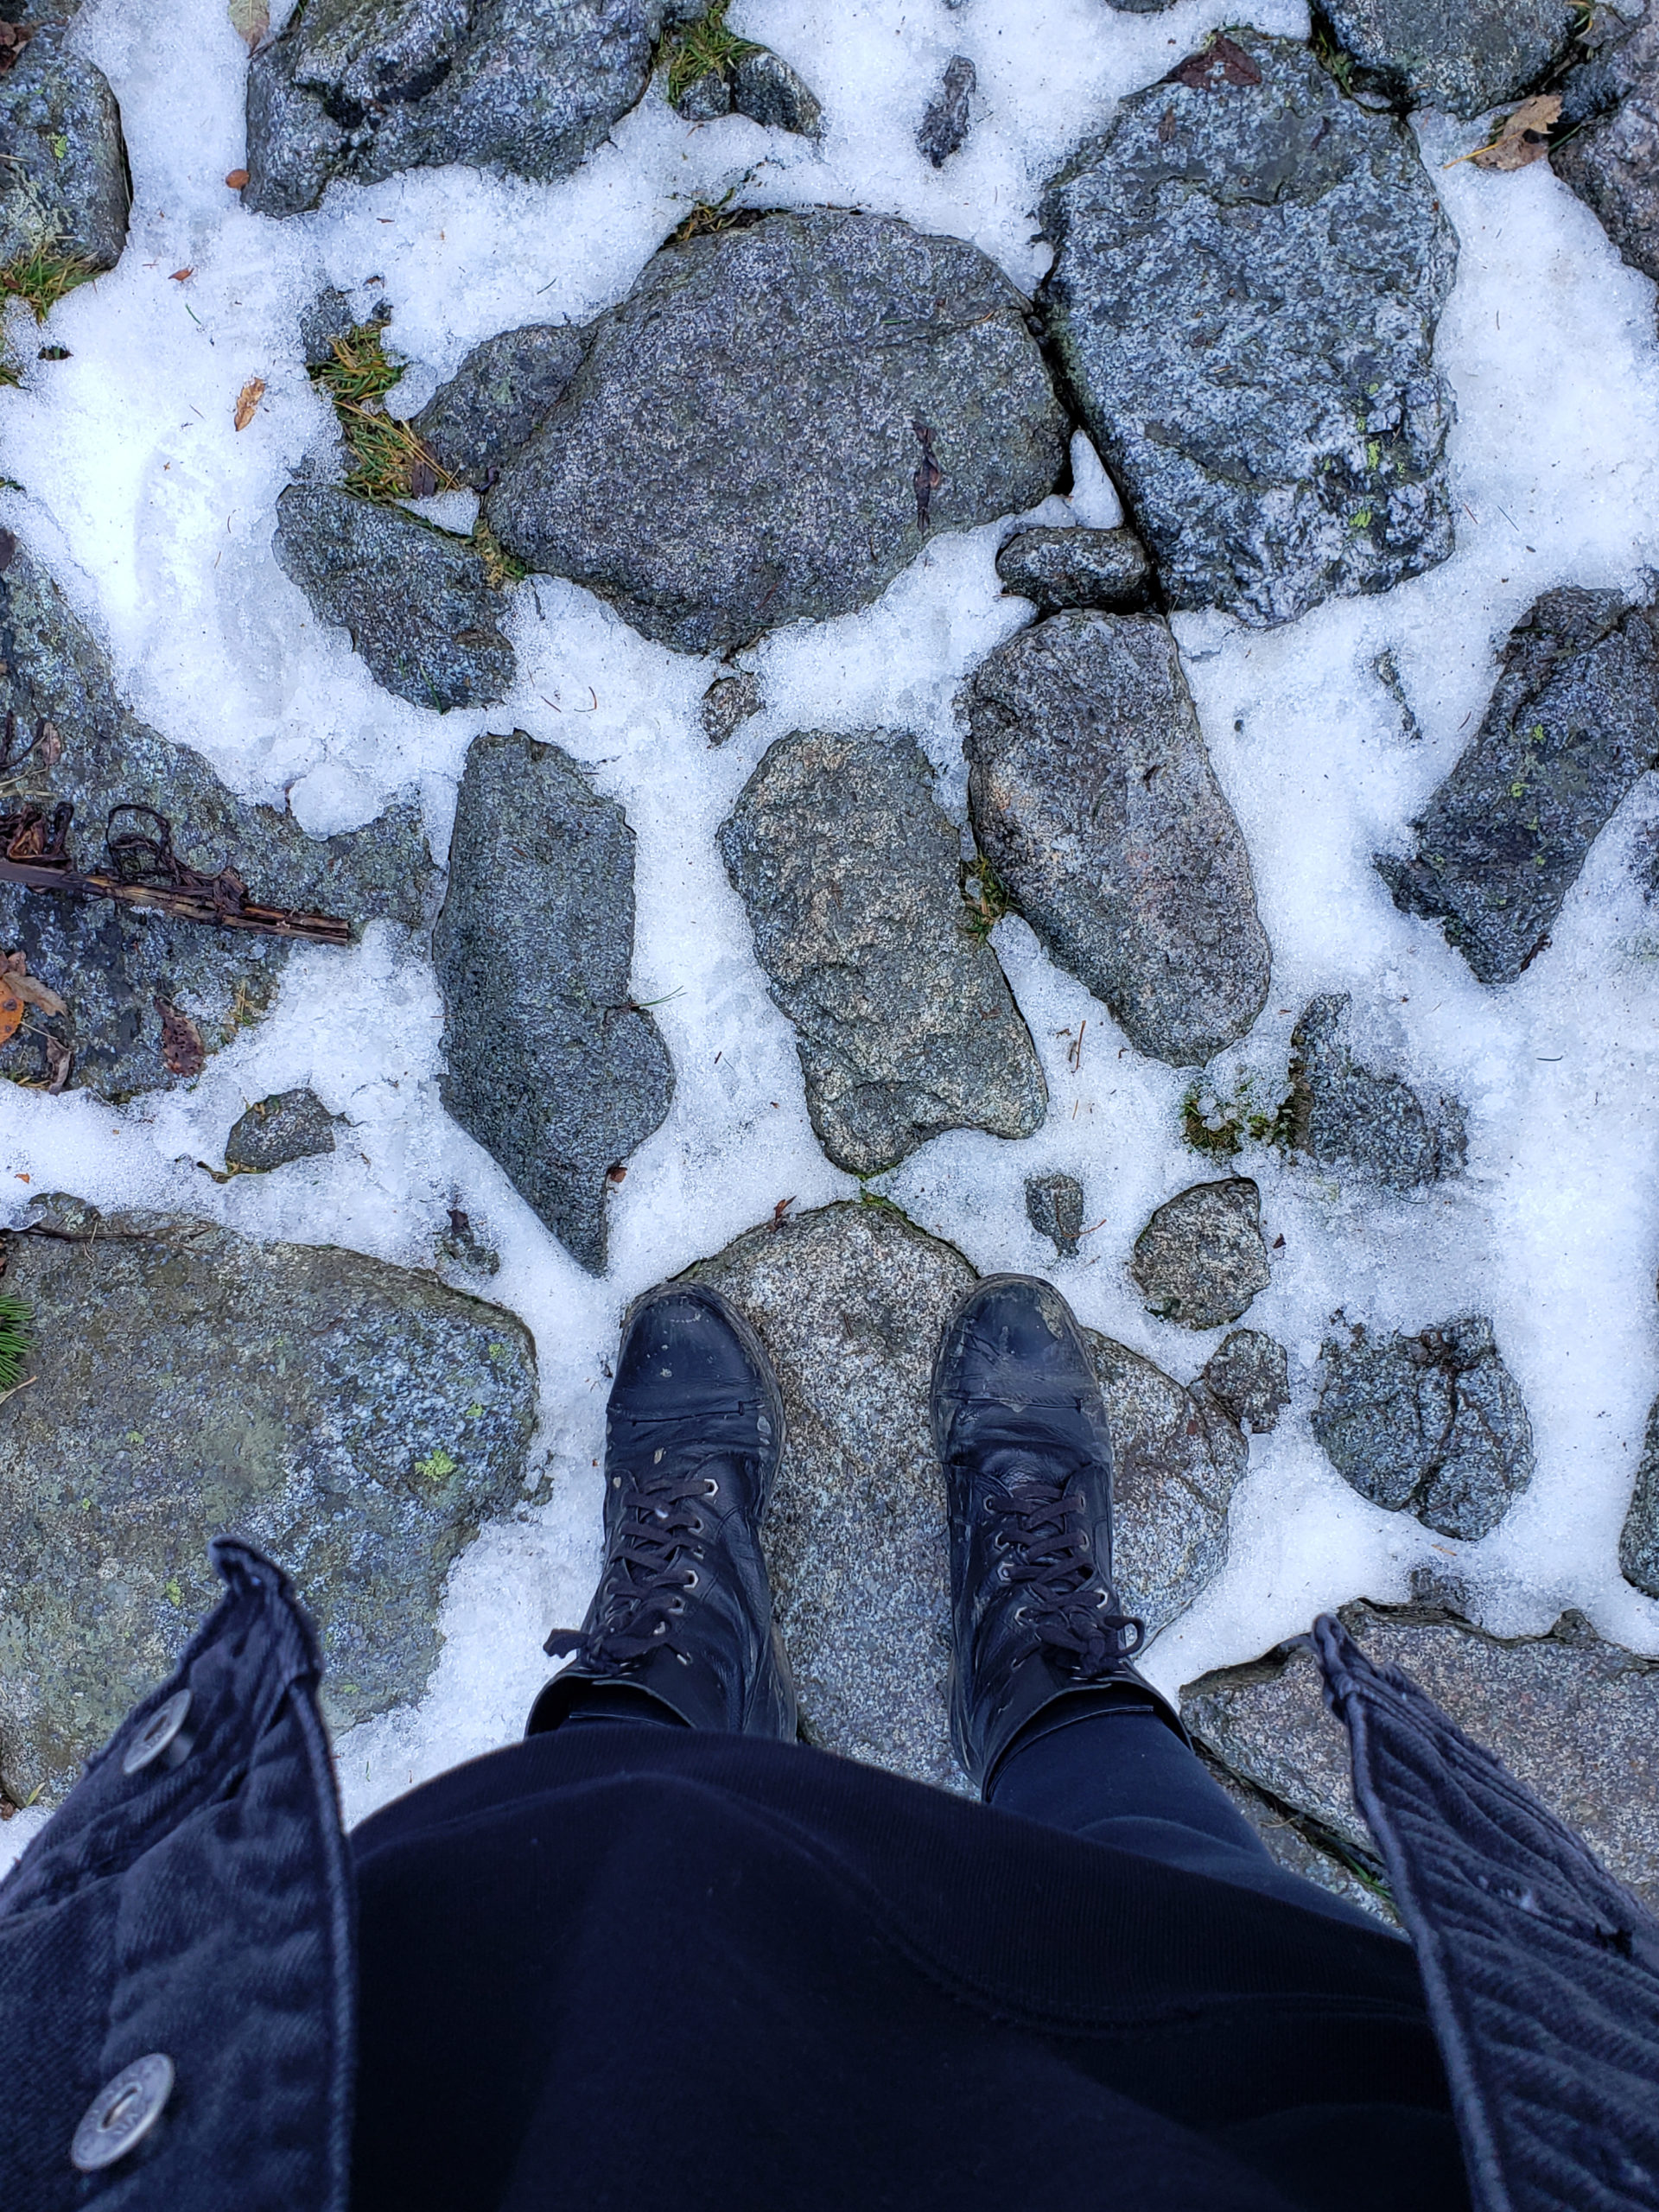 The Complete Guide To Hiking To Morskie Oko - Poland's Most Beautiful Lake In The Tatra Mountains